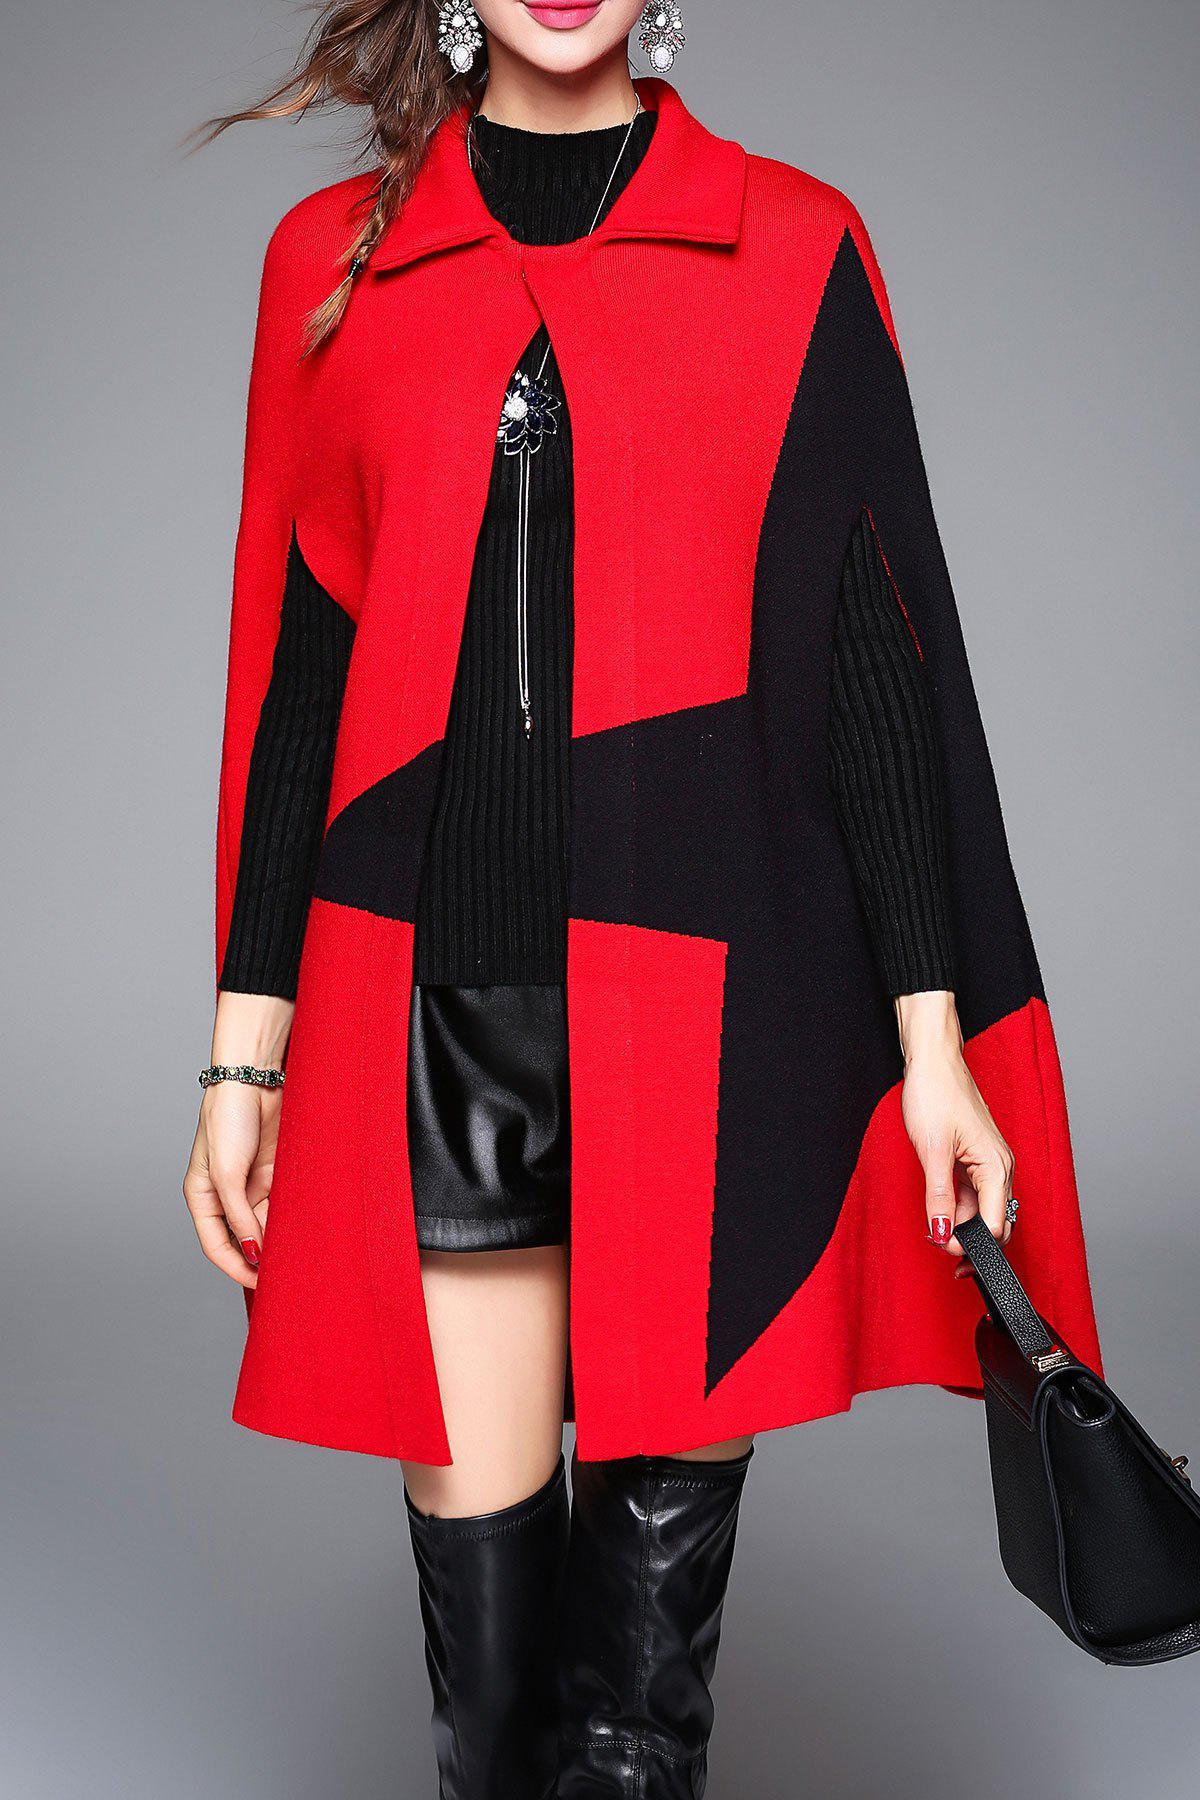 Color Block Knitted Cape Coat - RED ONE SIZE